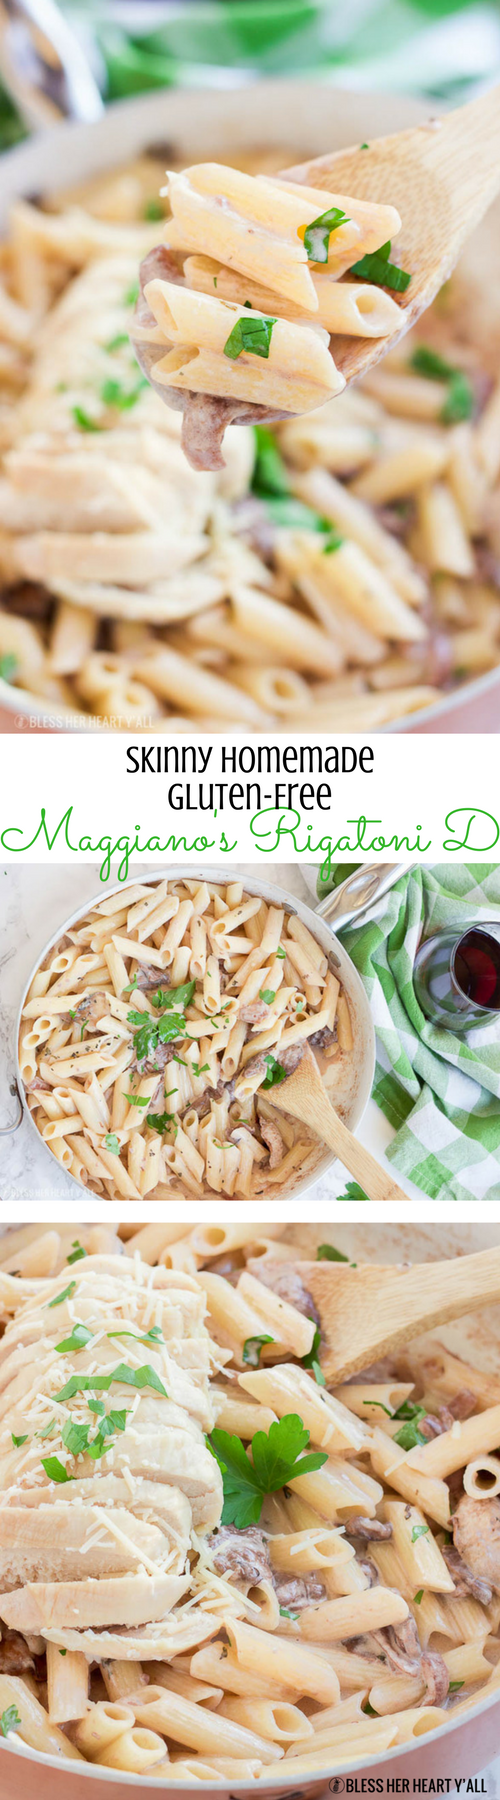 This skinny homemade Maggiano's Gluten-Free Rigatoni D recipe is a creamy healthy version of Maggiano's Little Italy's famous dish. A creamy coconut milk sauce infused with red wine, garlic, and mushrooms is drizzled over al dente noodles and sliced chicken breasts.